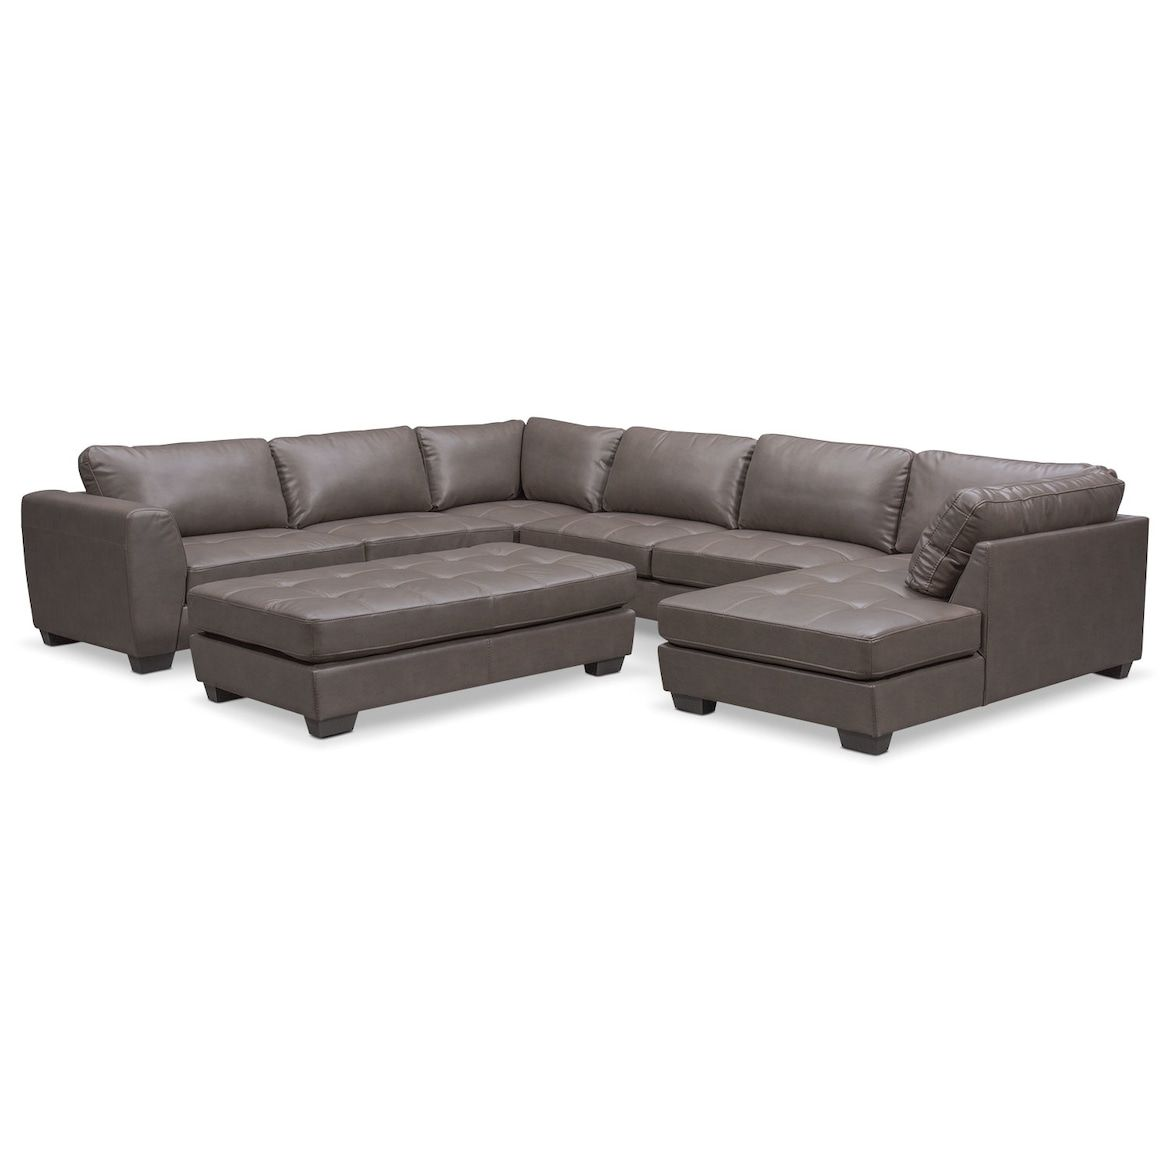 Santana 4 Piece Sectional With Chaise Furniture Living Room Leather Value City Furniture